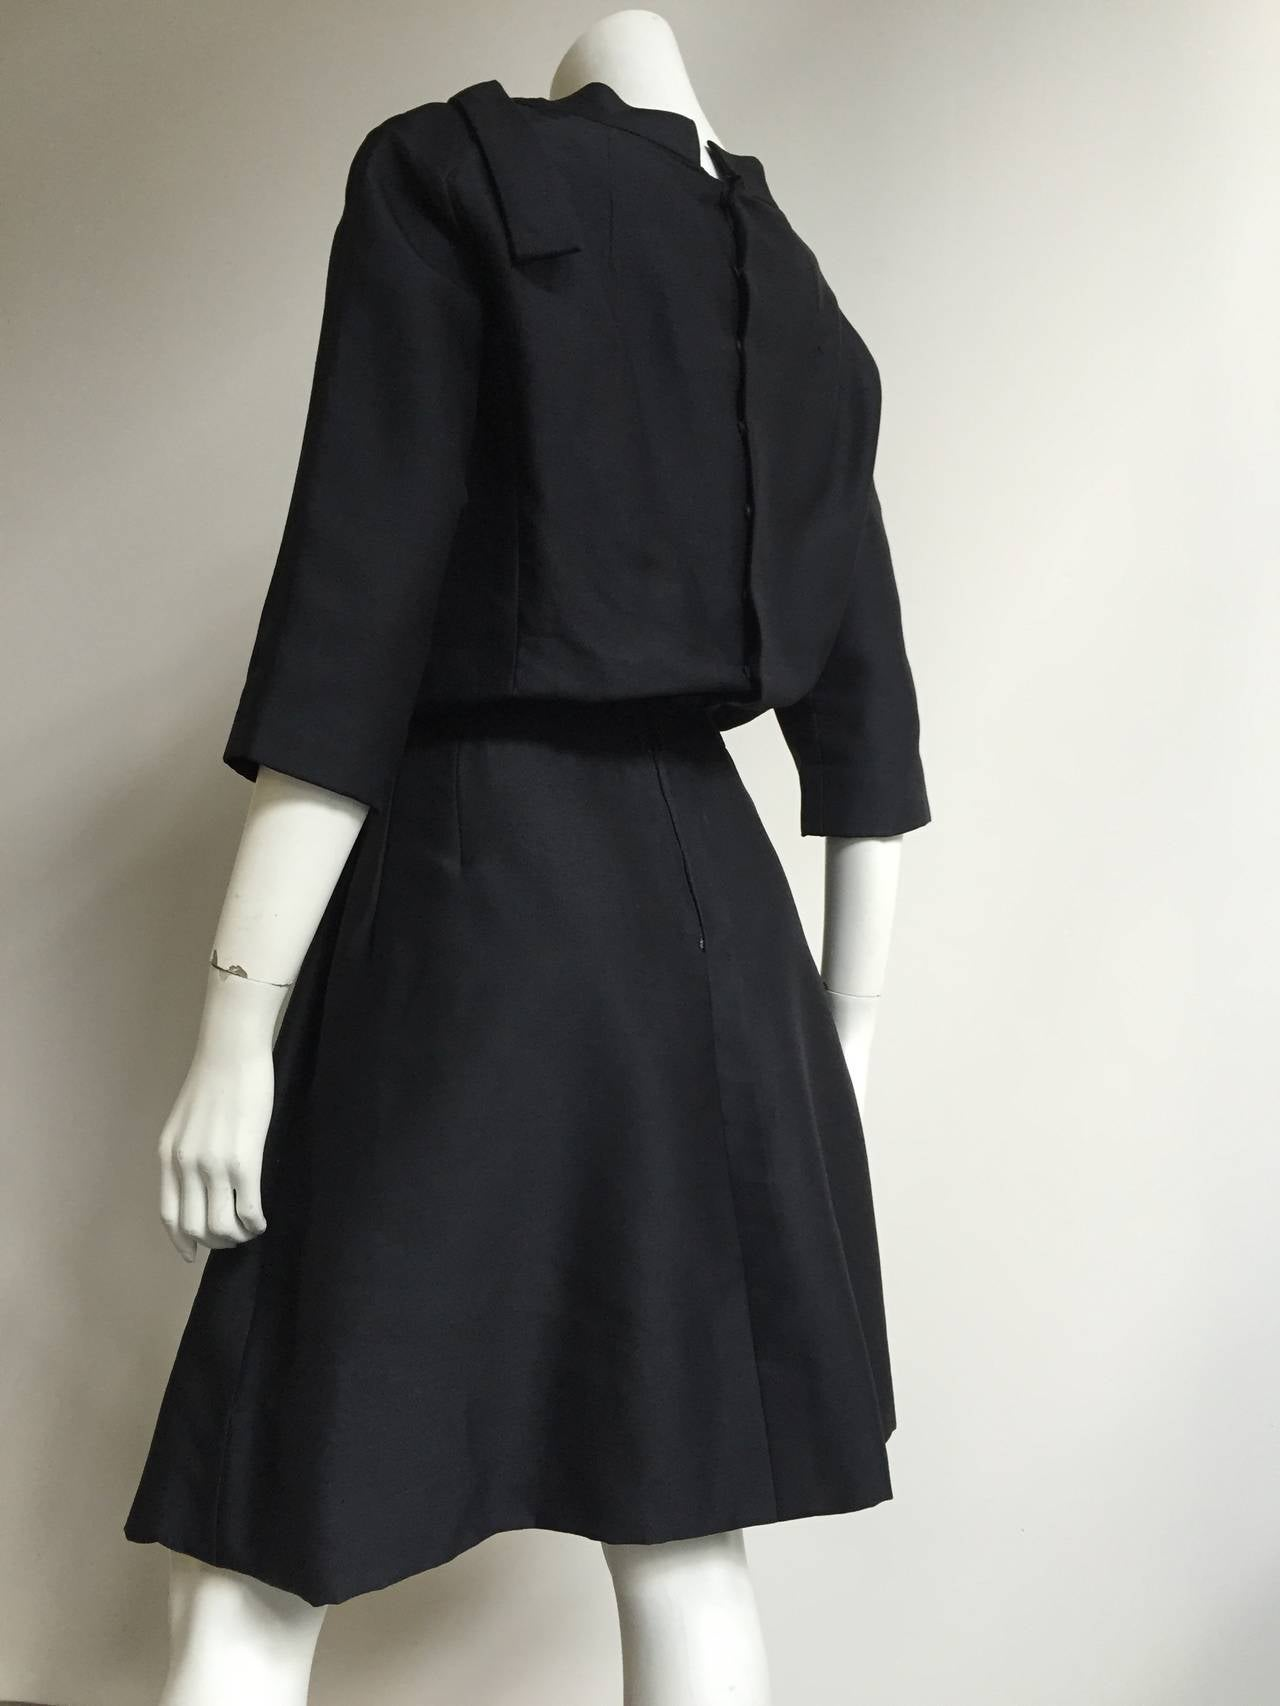 Dior 1950s Black Silk Evening Dress With Pockets Size 6. 5